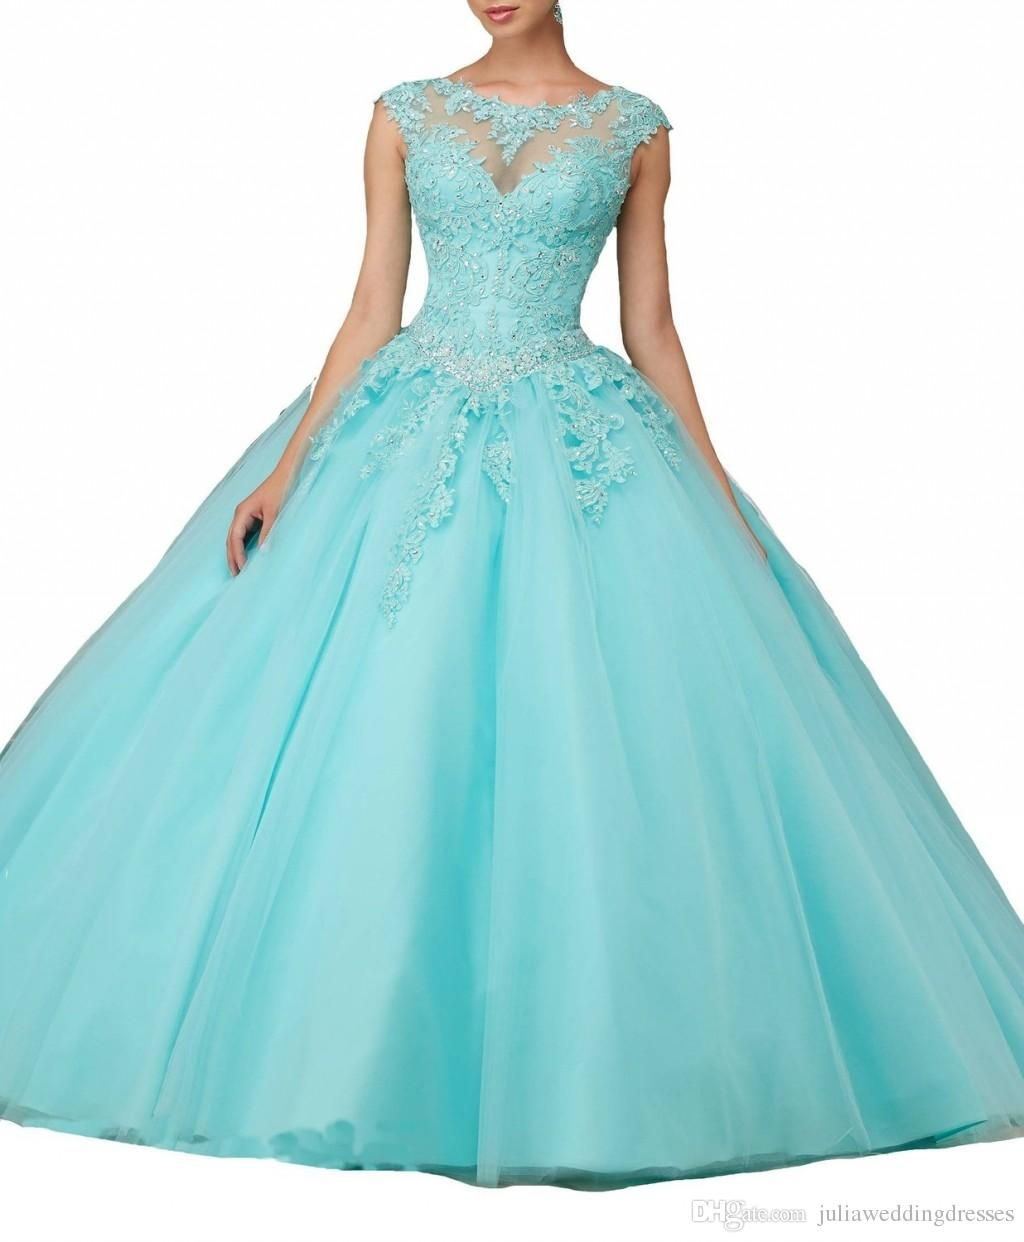 New Lace Ball Gown Quinceanera Dresses Tulle Appliques Beaded Floor ...